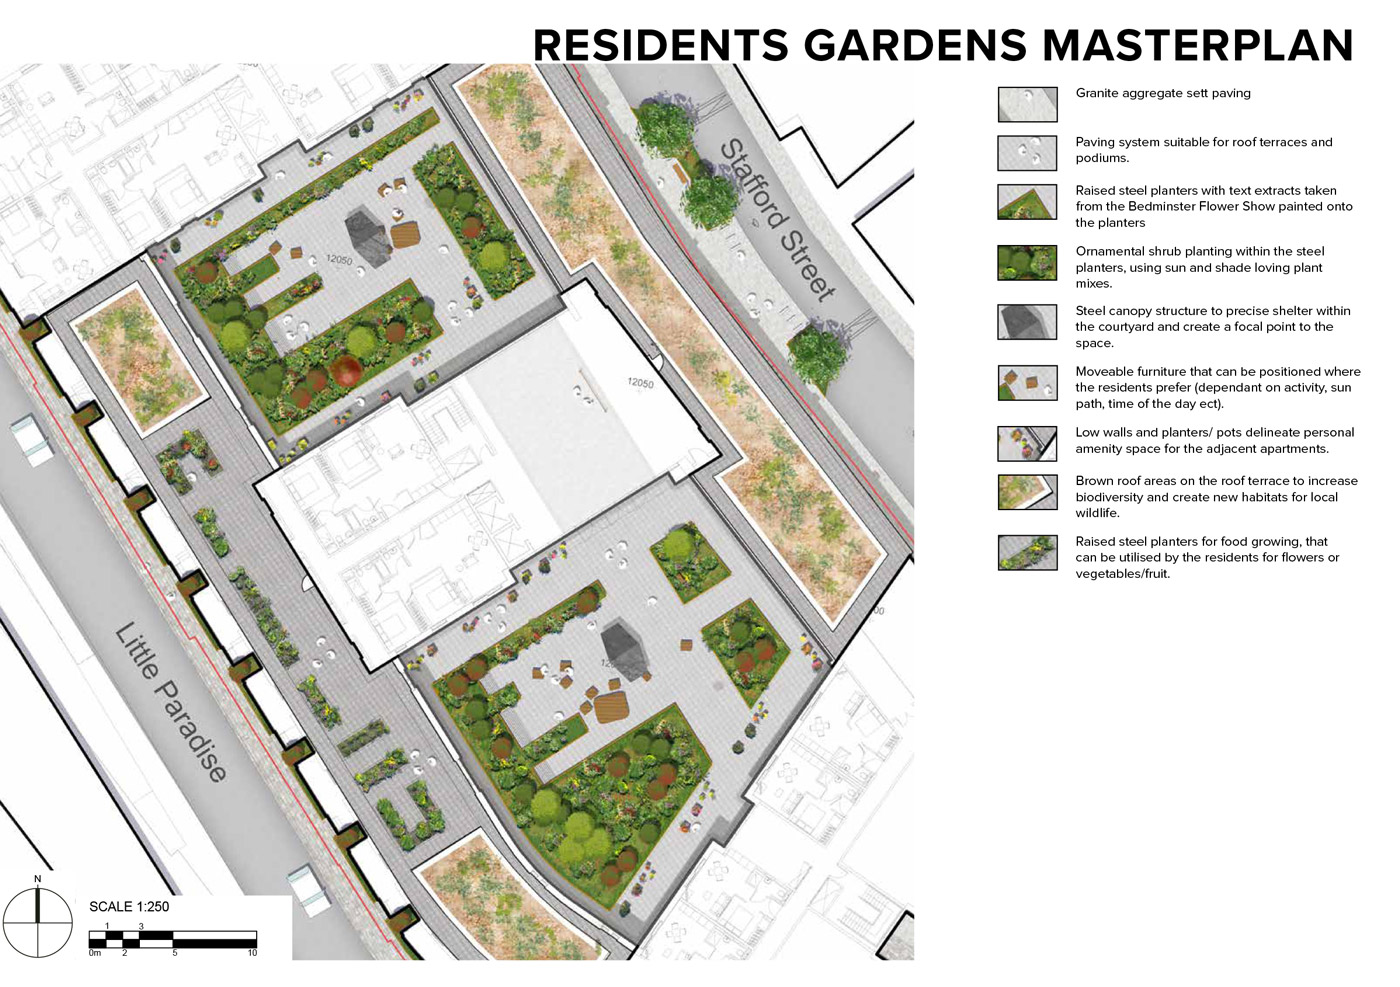 Residents Gardens Masterplan